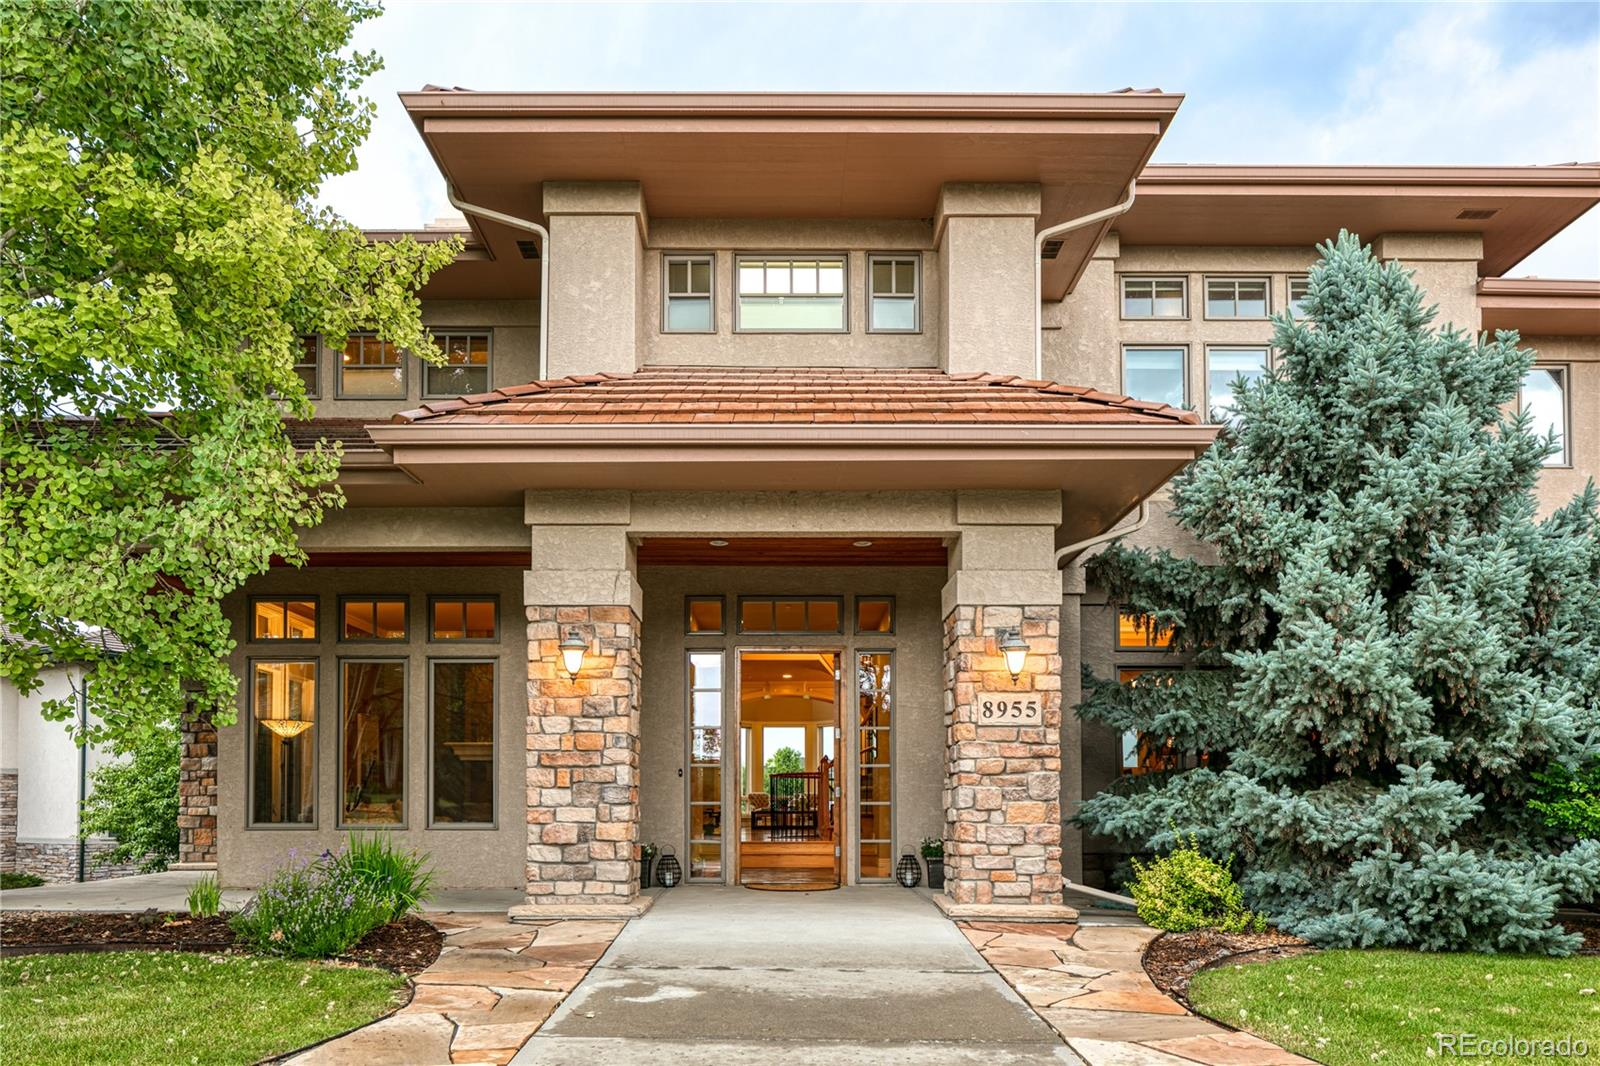 8955 Little Raven Trail, Niwot, CO 80503 - Niwot, CO real estate listing